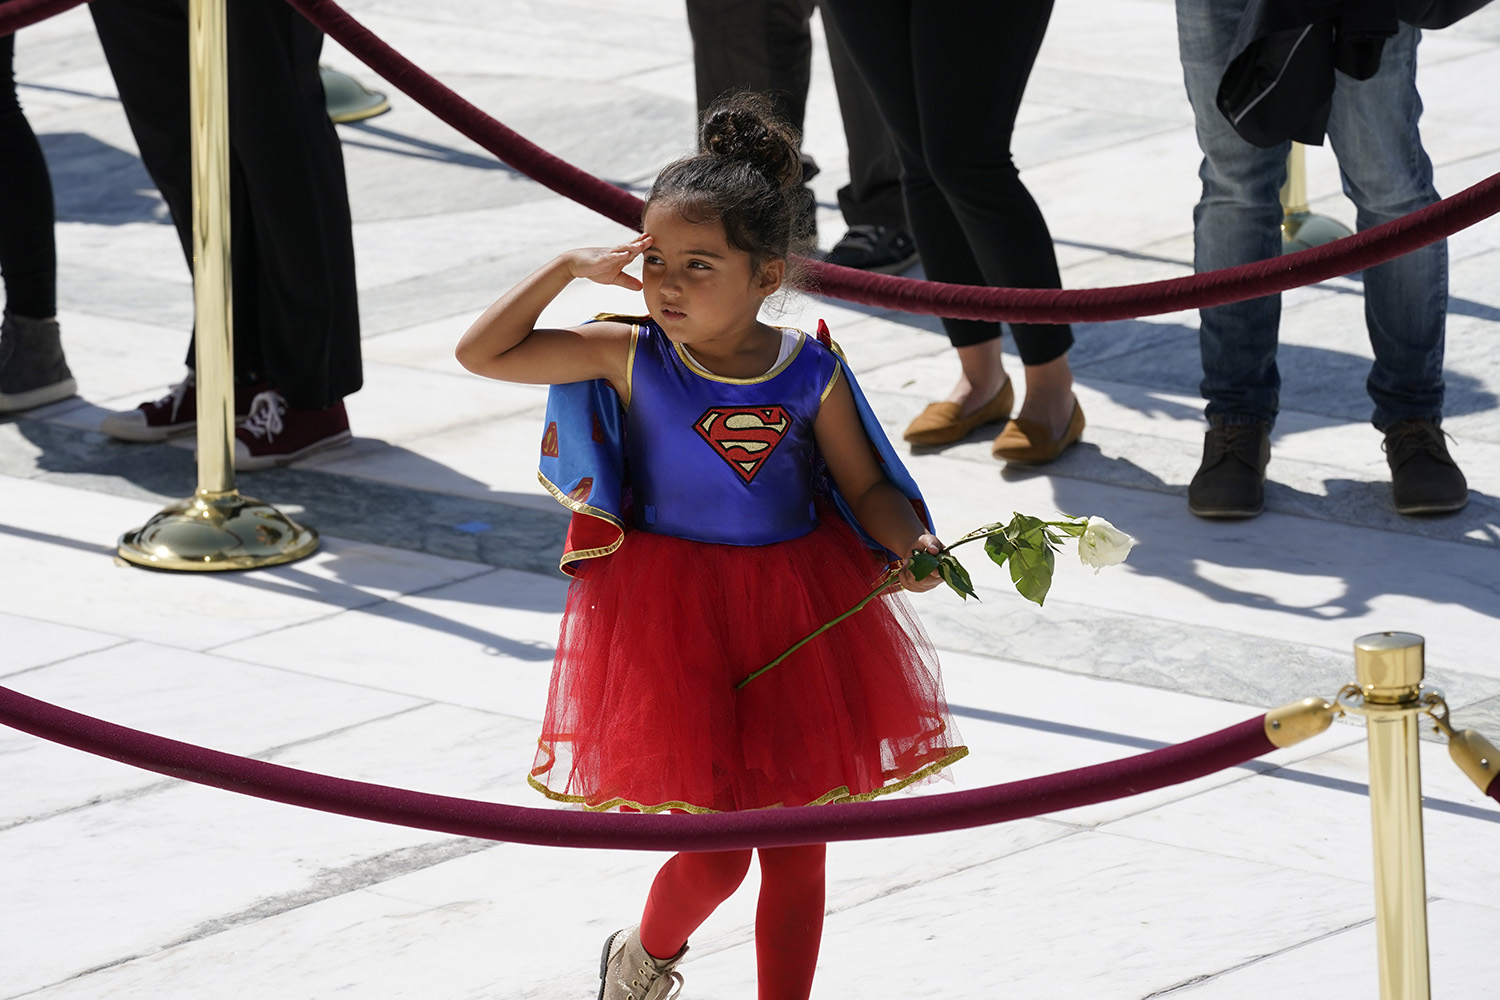 A girl dressed in a Supergirl costume pays her respects at the casket of Justice Ruth Bader Ginsburg on the steps of the U.S. Supreme Court in Washington on Sept. 23. Alex Brandon-Pool/Getty Images